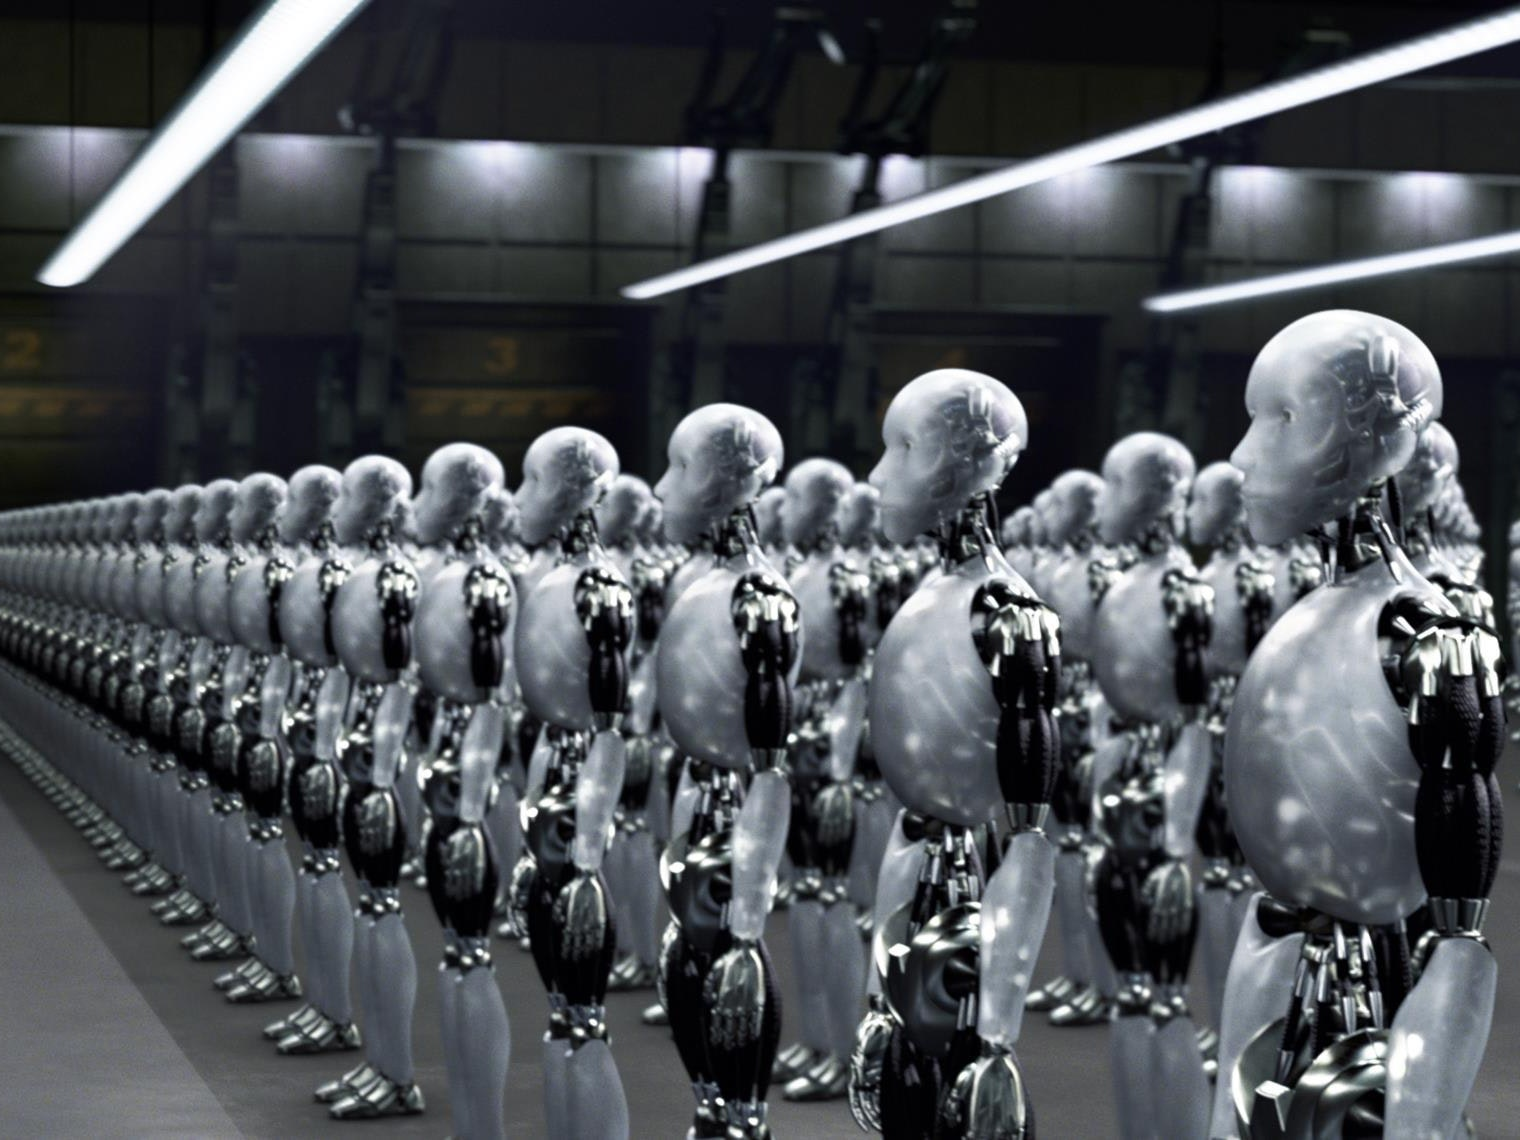 U.N. Gathers Experts to Discuss LAWS and Our Potential Autonomous Robot Demise